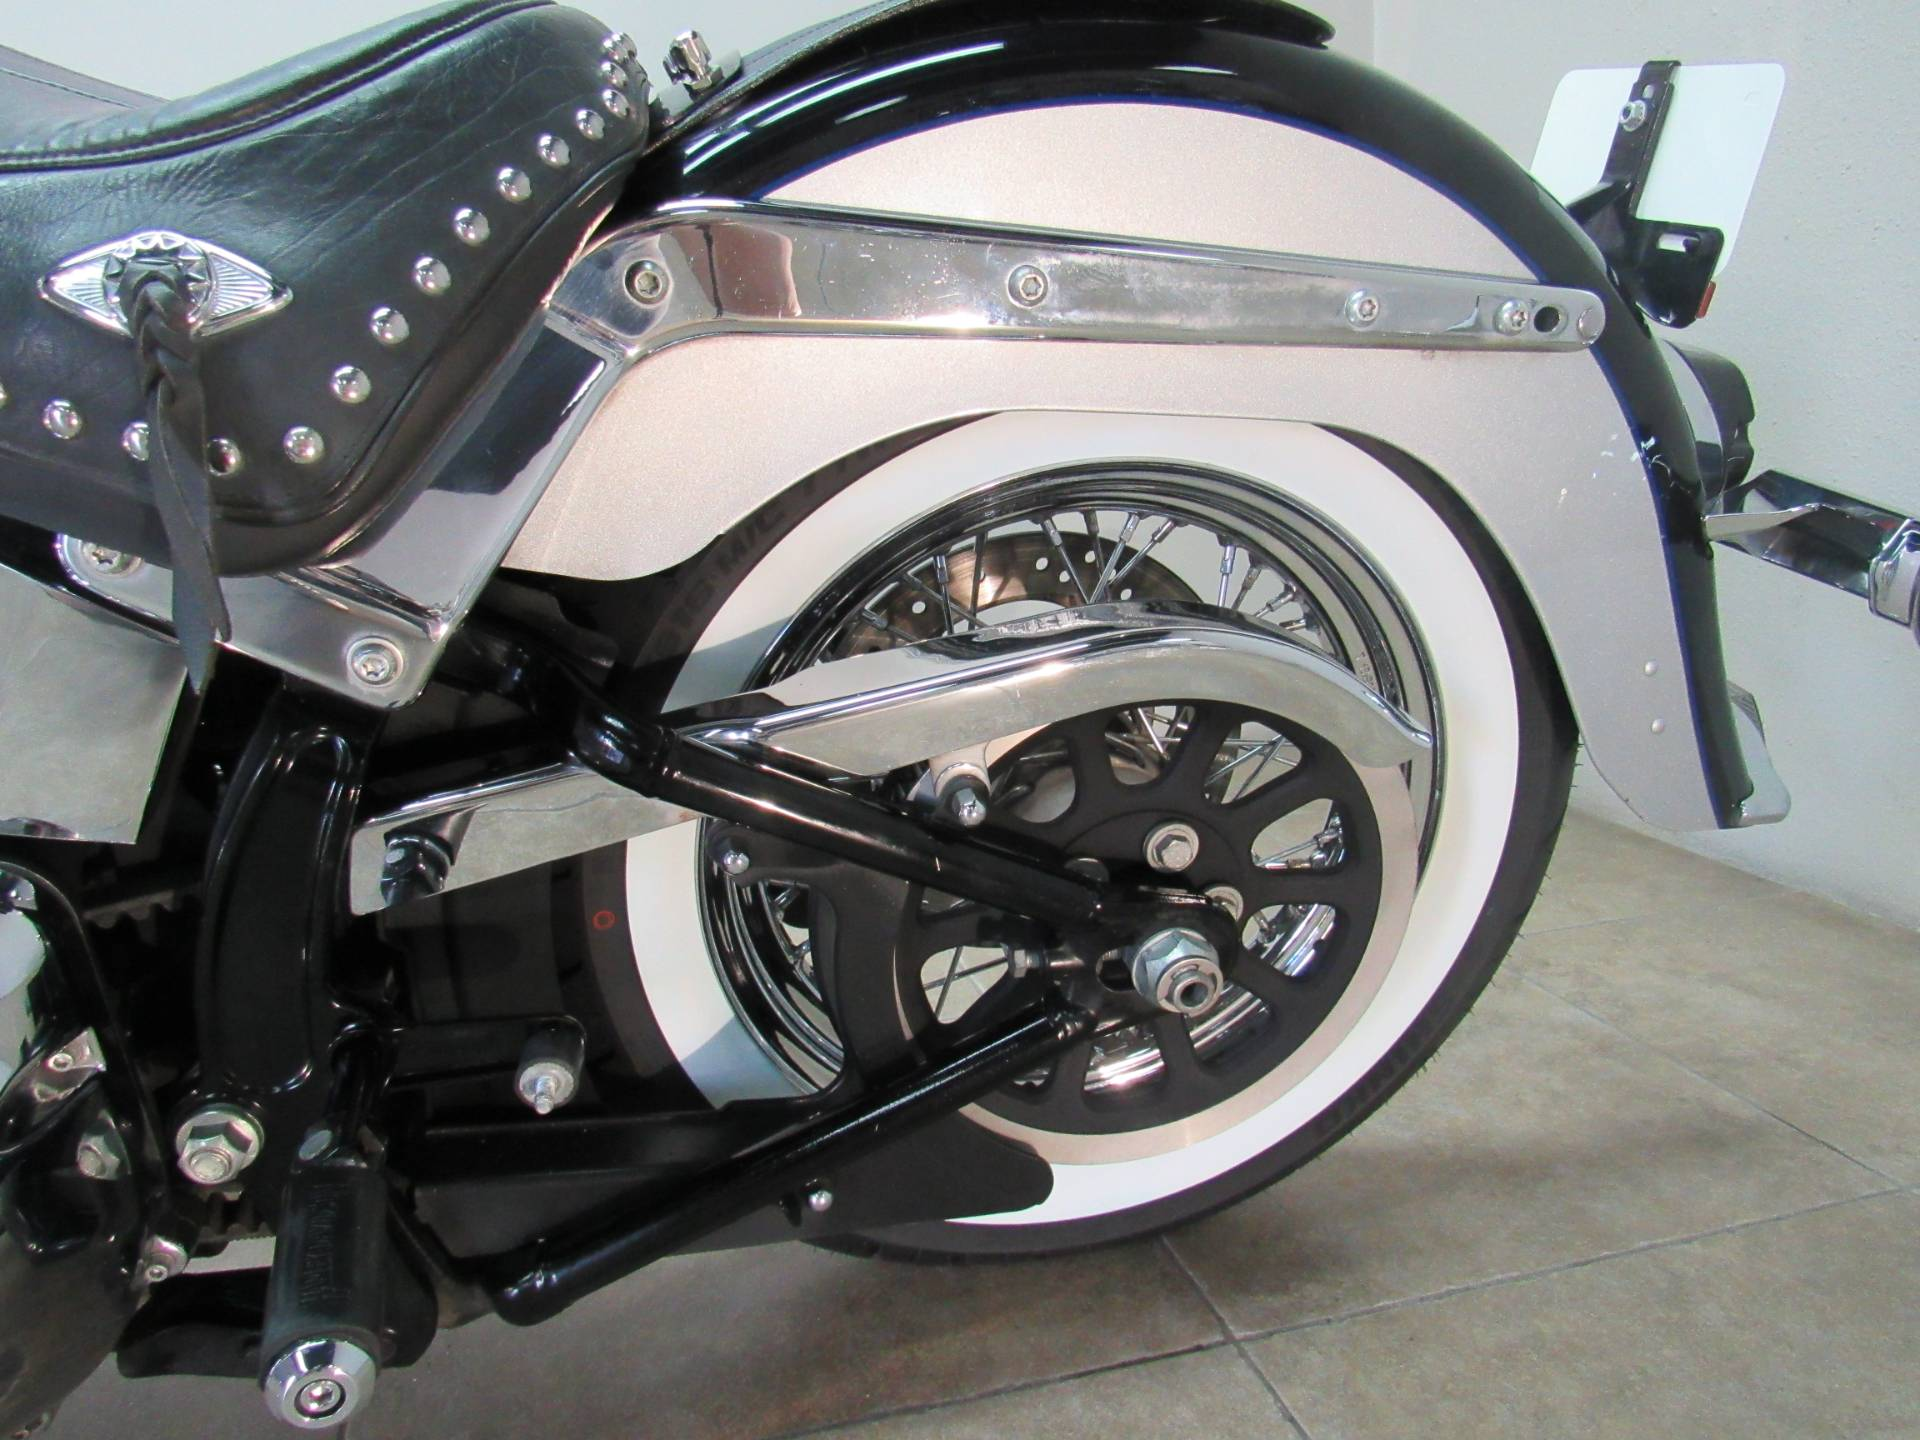 2012 Harley-Davidson Heritage Softail® Classic in Temecula, California - Photo 21